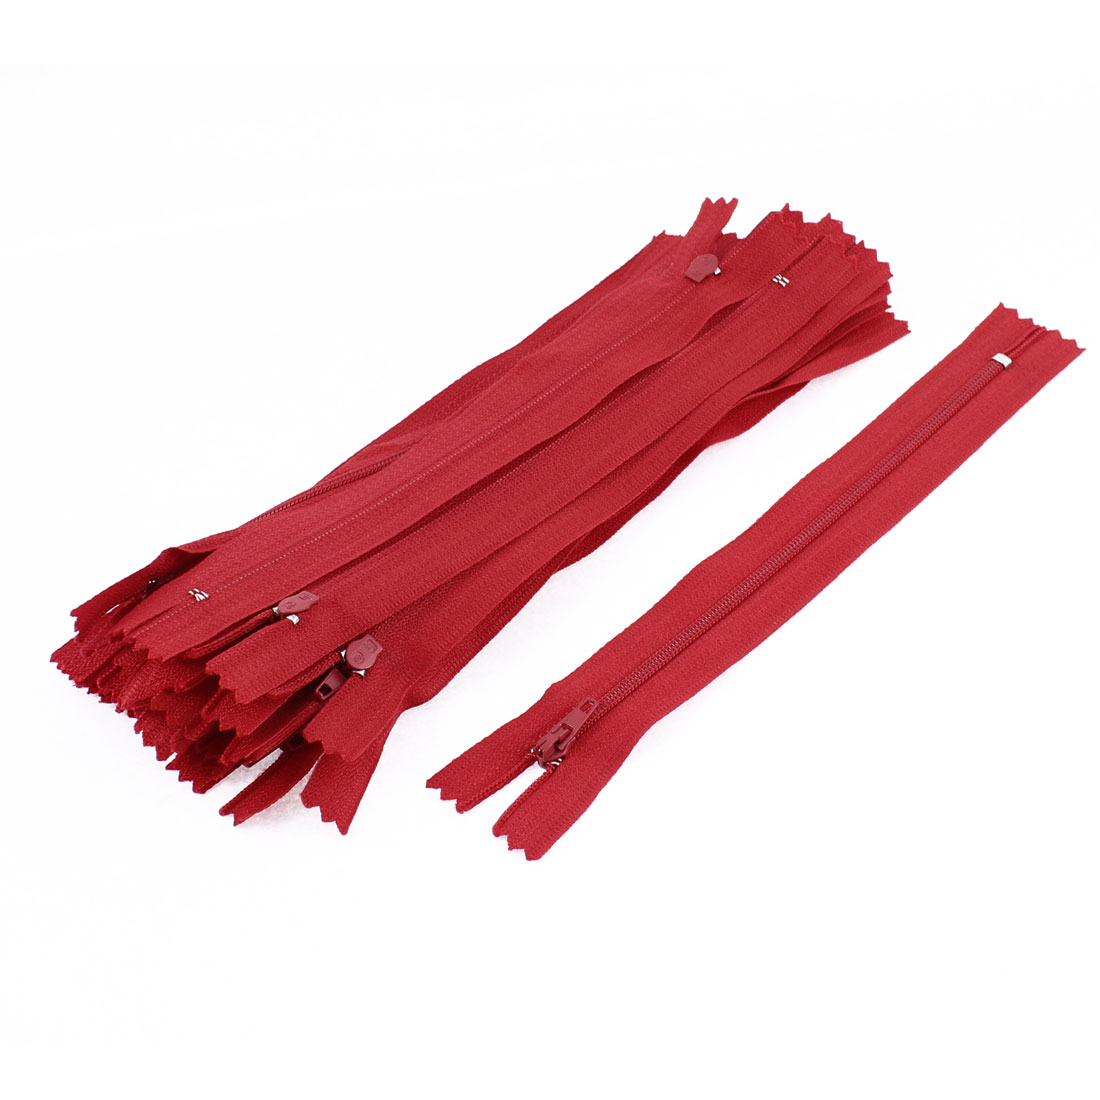 Dress Pants Closed End Nylon Zippers Tailor Sewing Craft Tool Red 18cm 20 Pcs